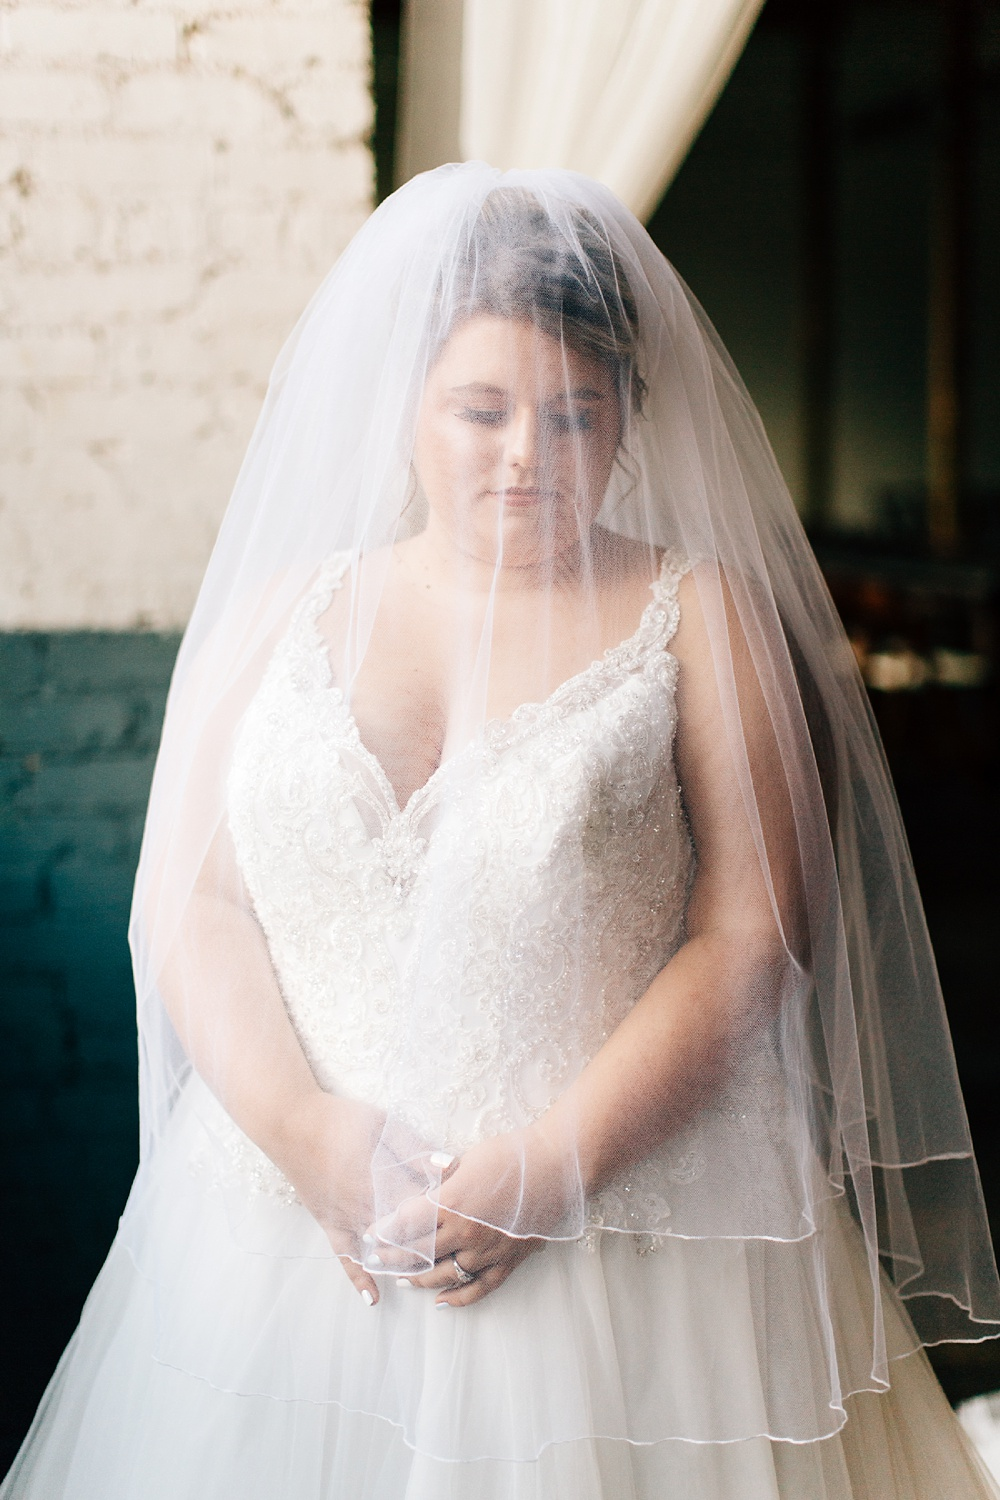 veil bridal portrait by rachael bowman photography